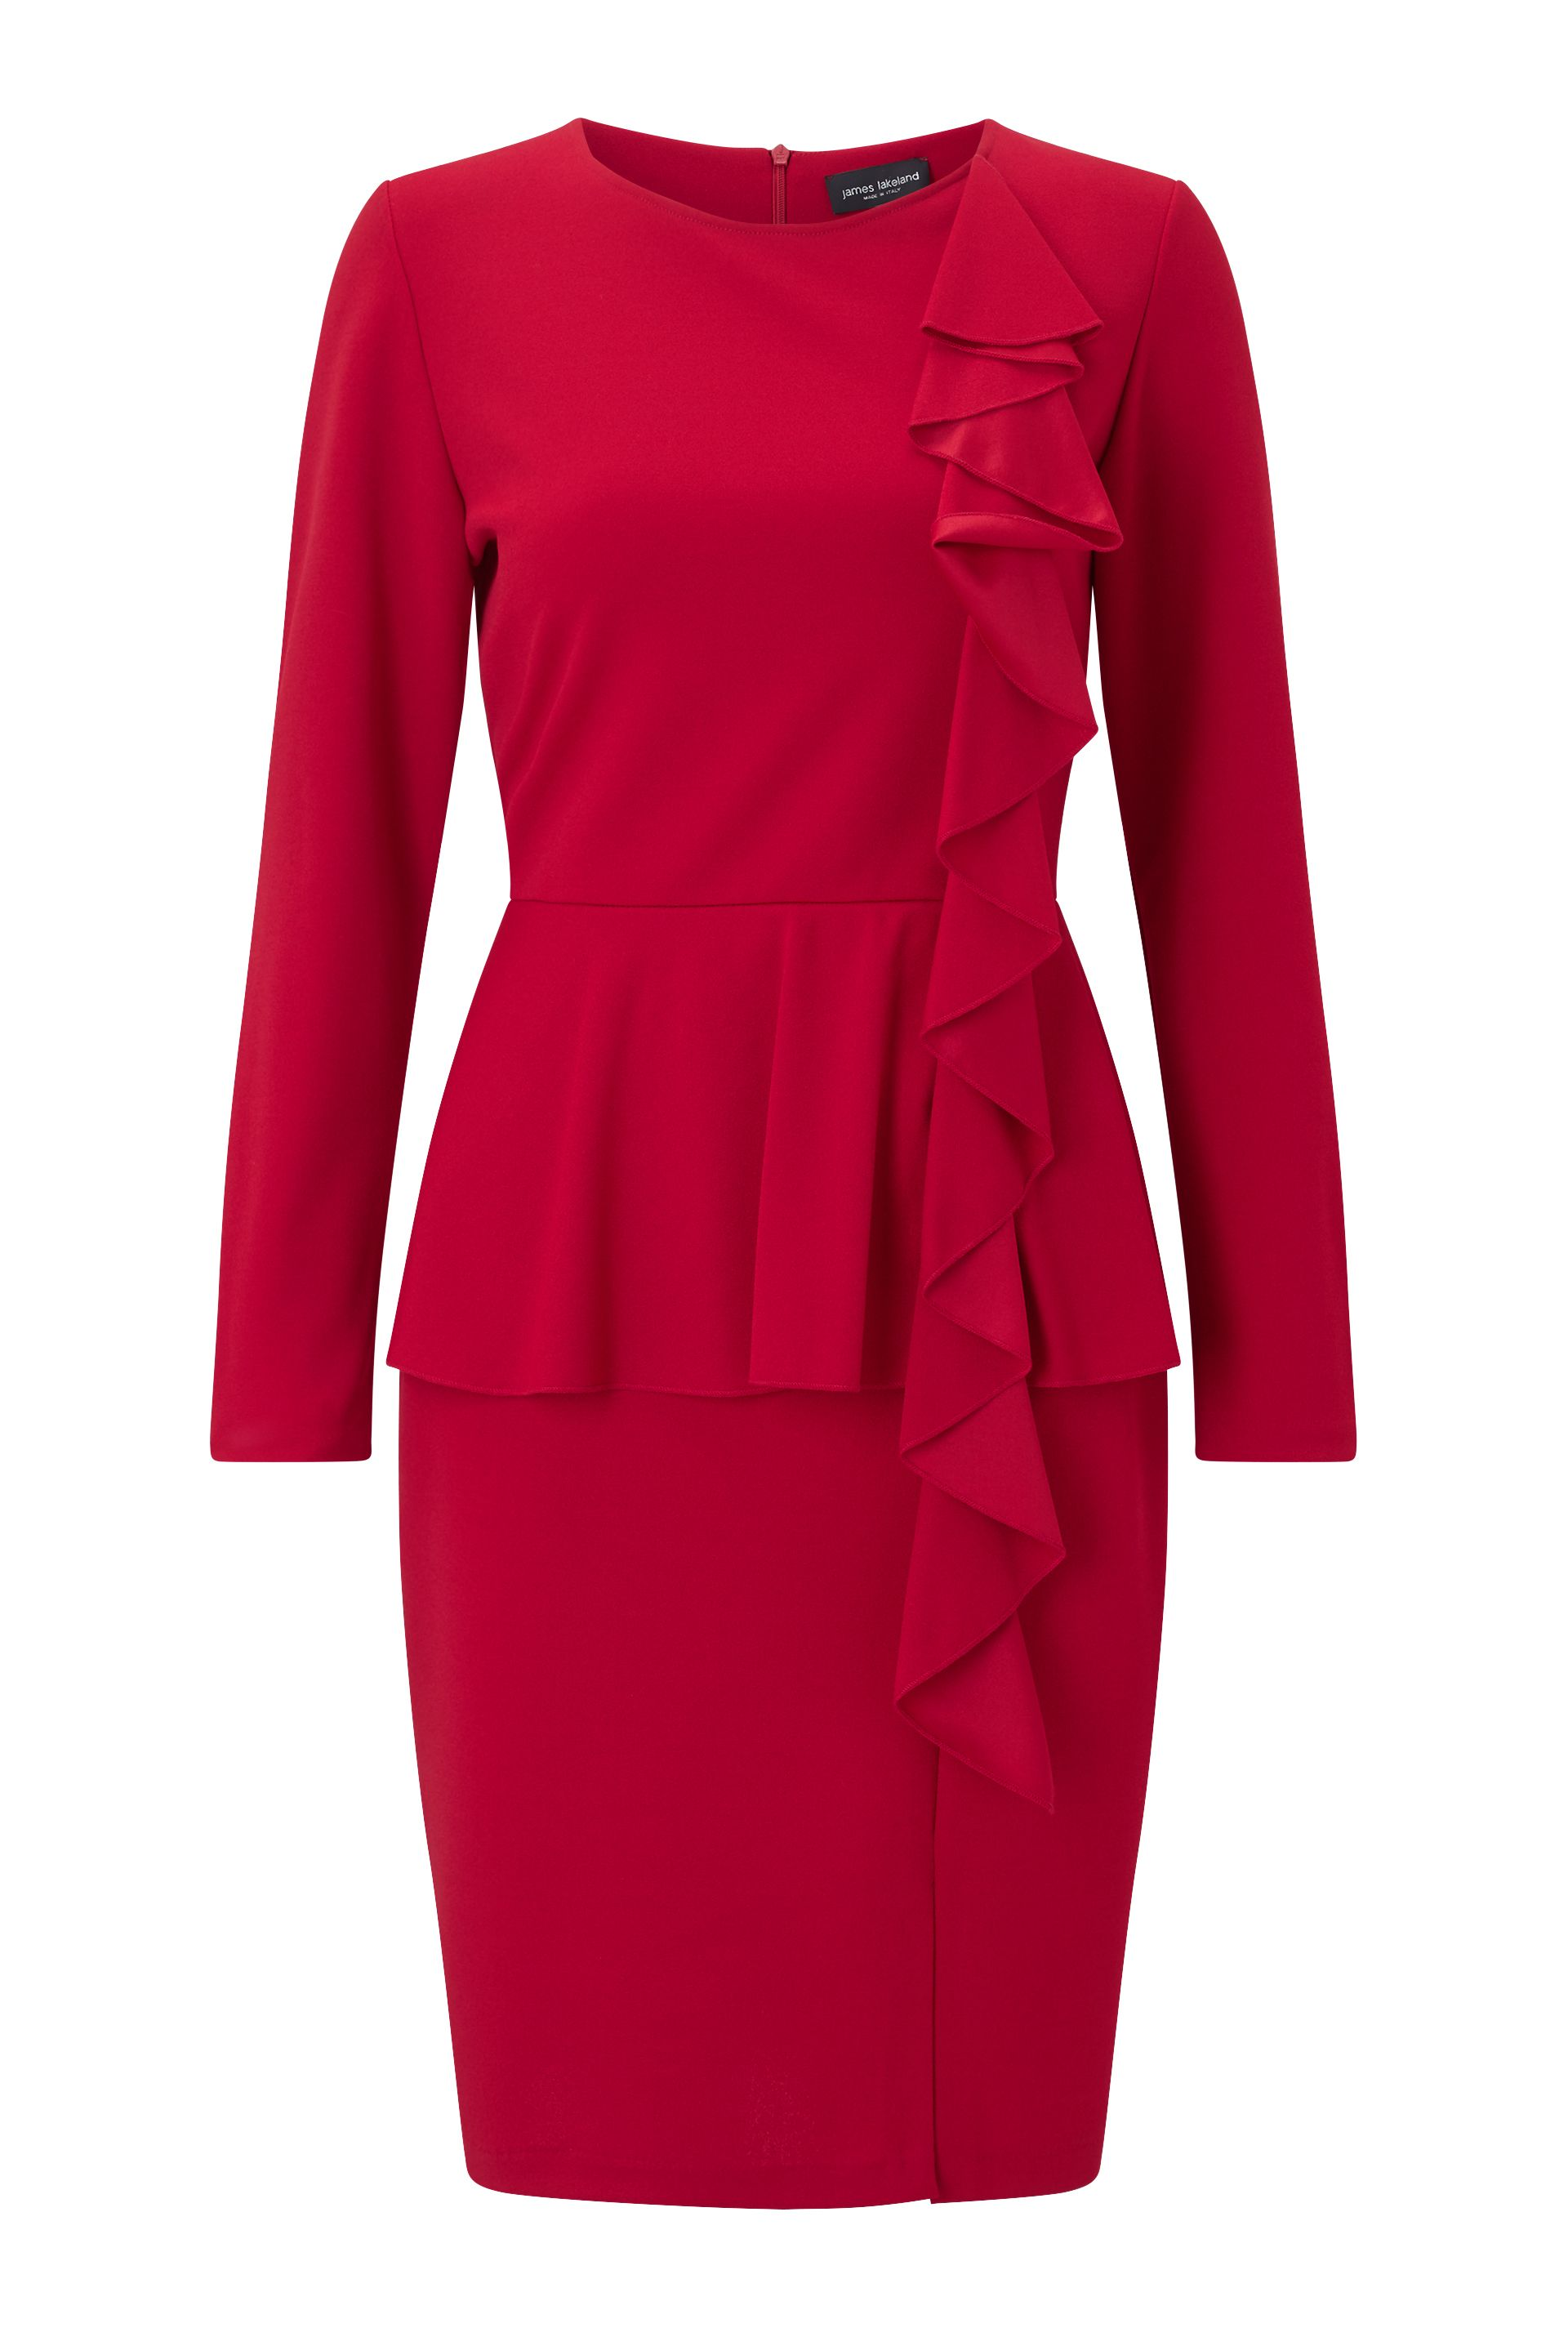 James Lakeland Ruffle Peplum Dress, Red